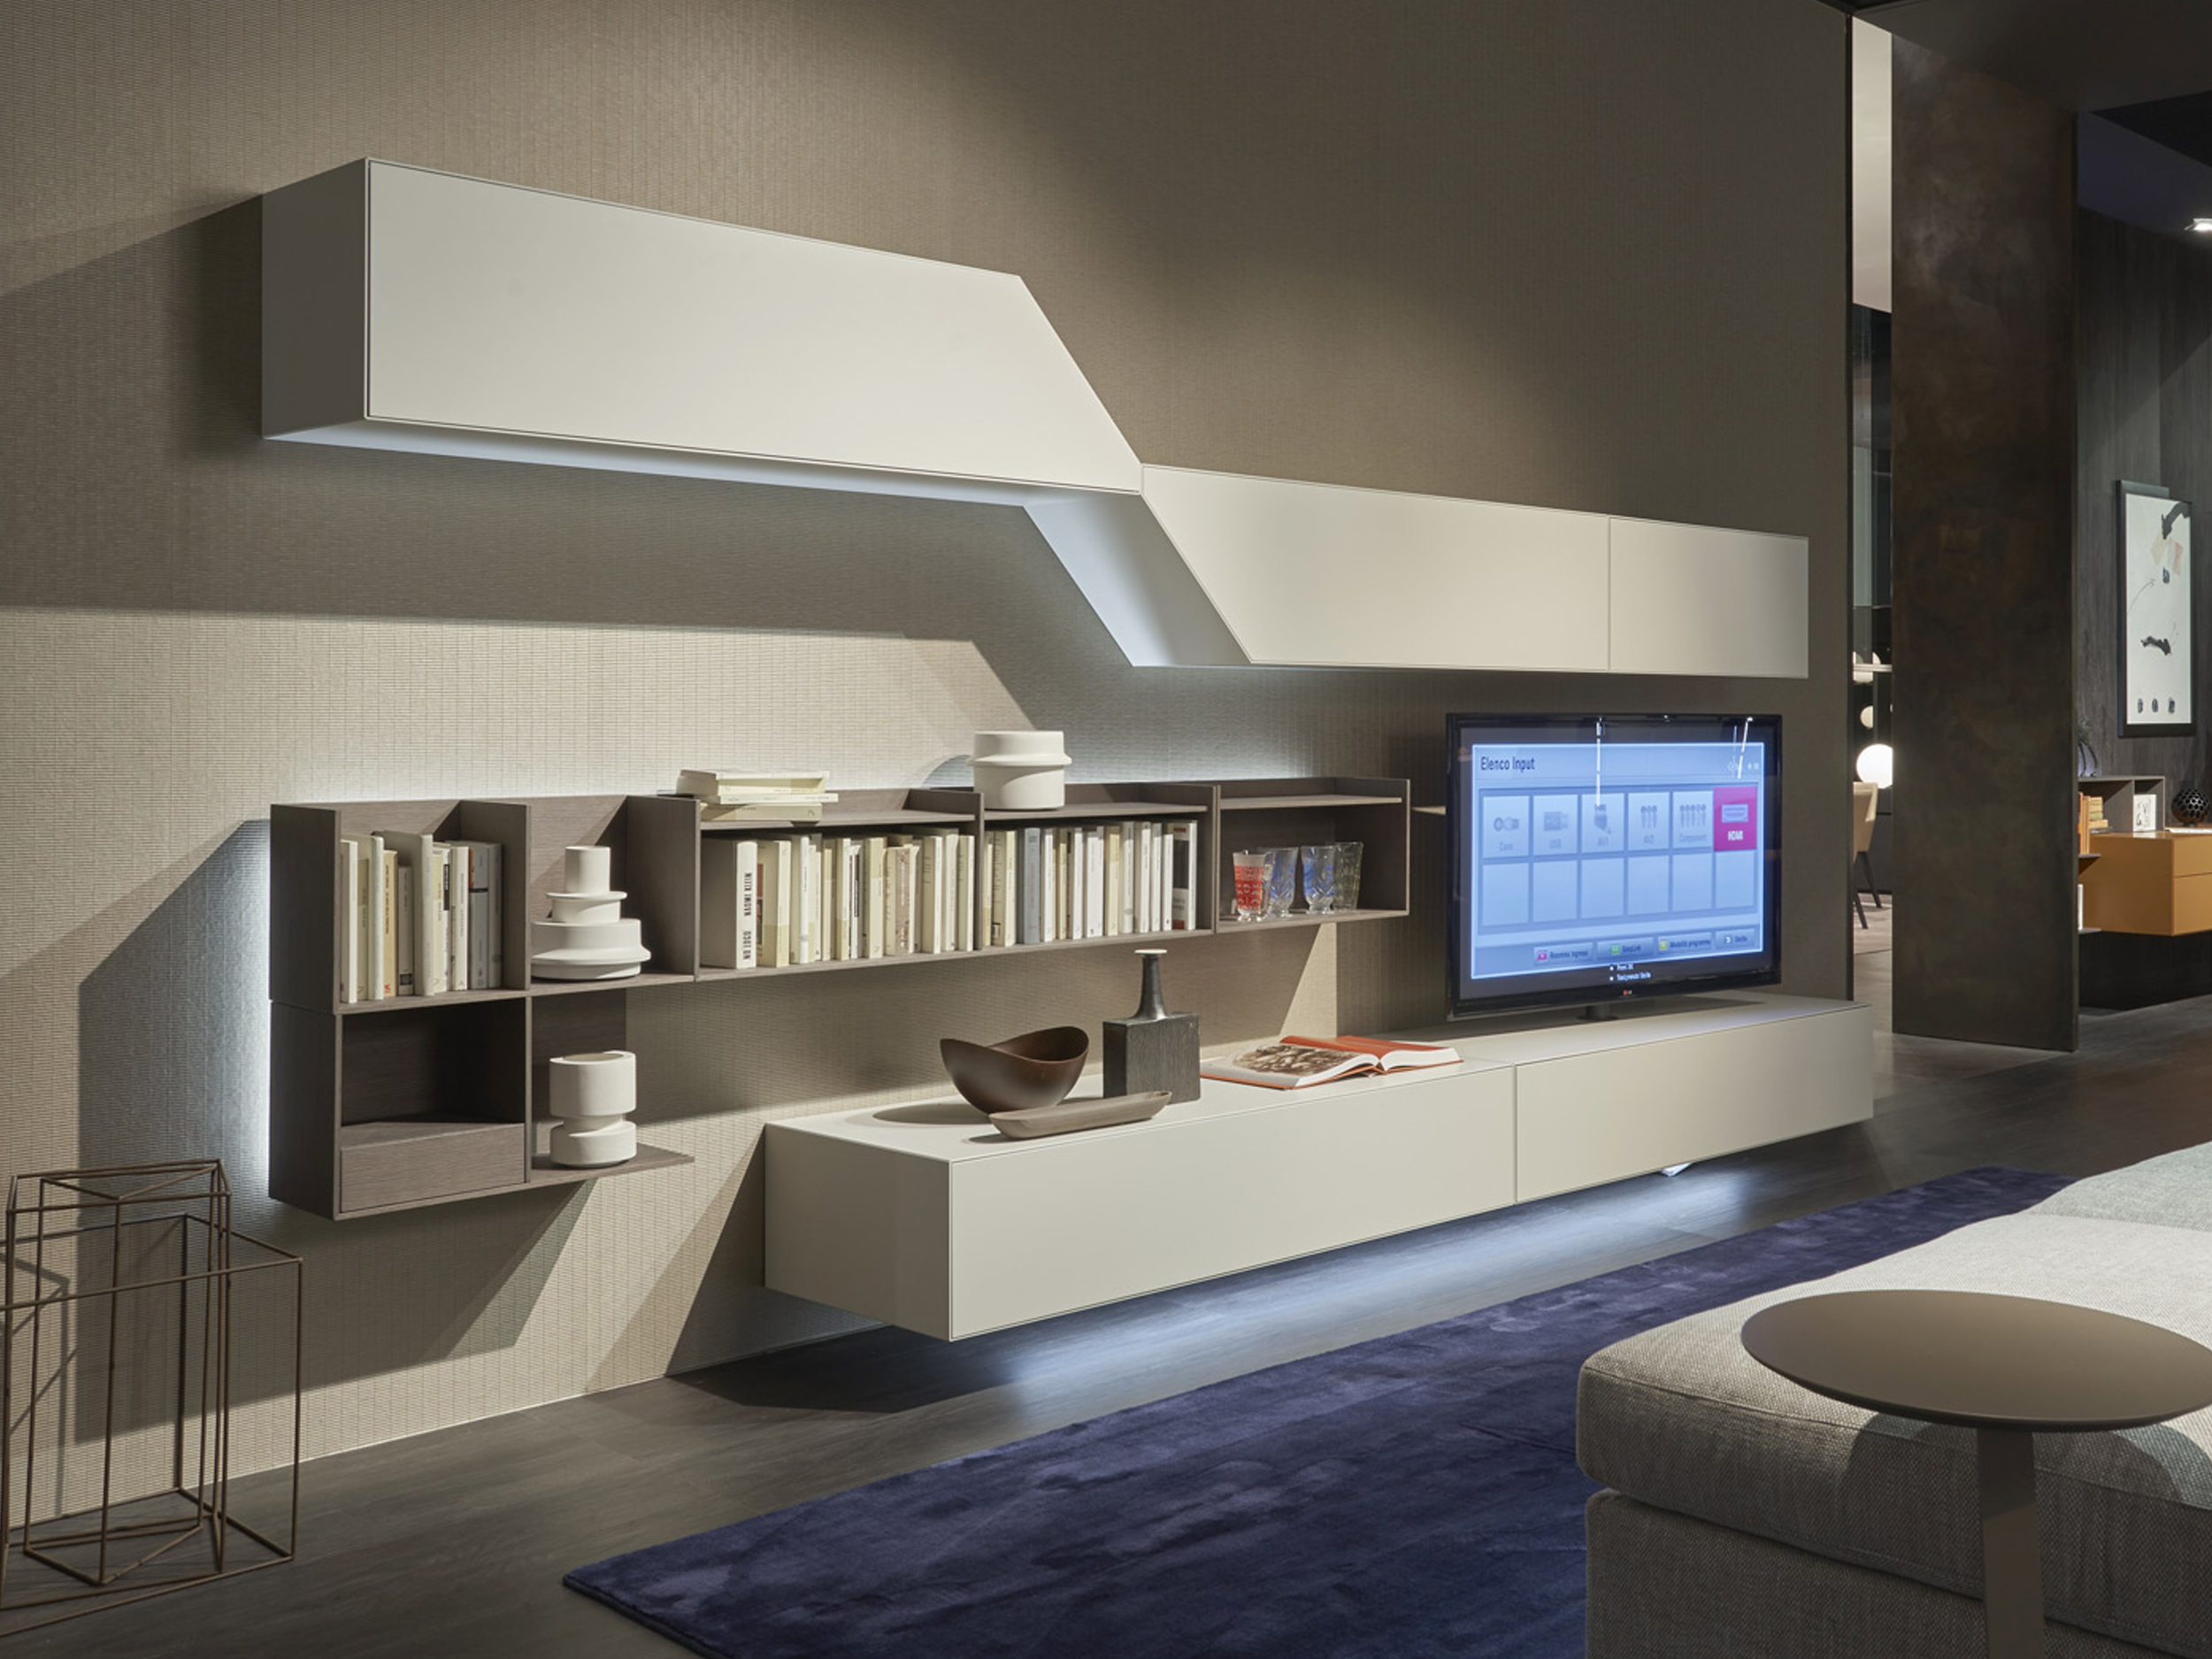 Convenient Technology - The furniture systems build by Sangiacomo simplistic but impressive ideas and solutions that impact living and sleeping areas with a wide choice of materials, sizes, and customizable accessories.